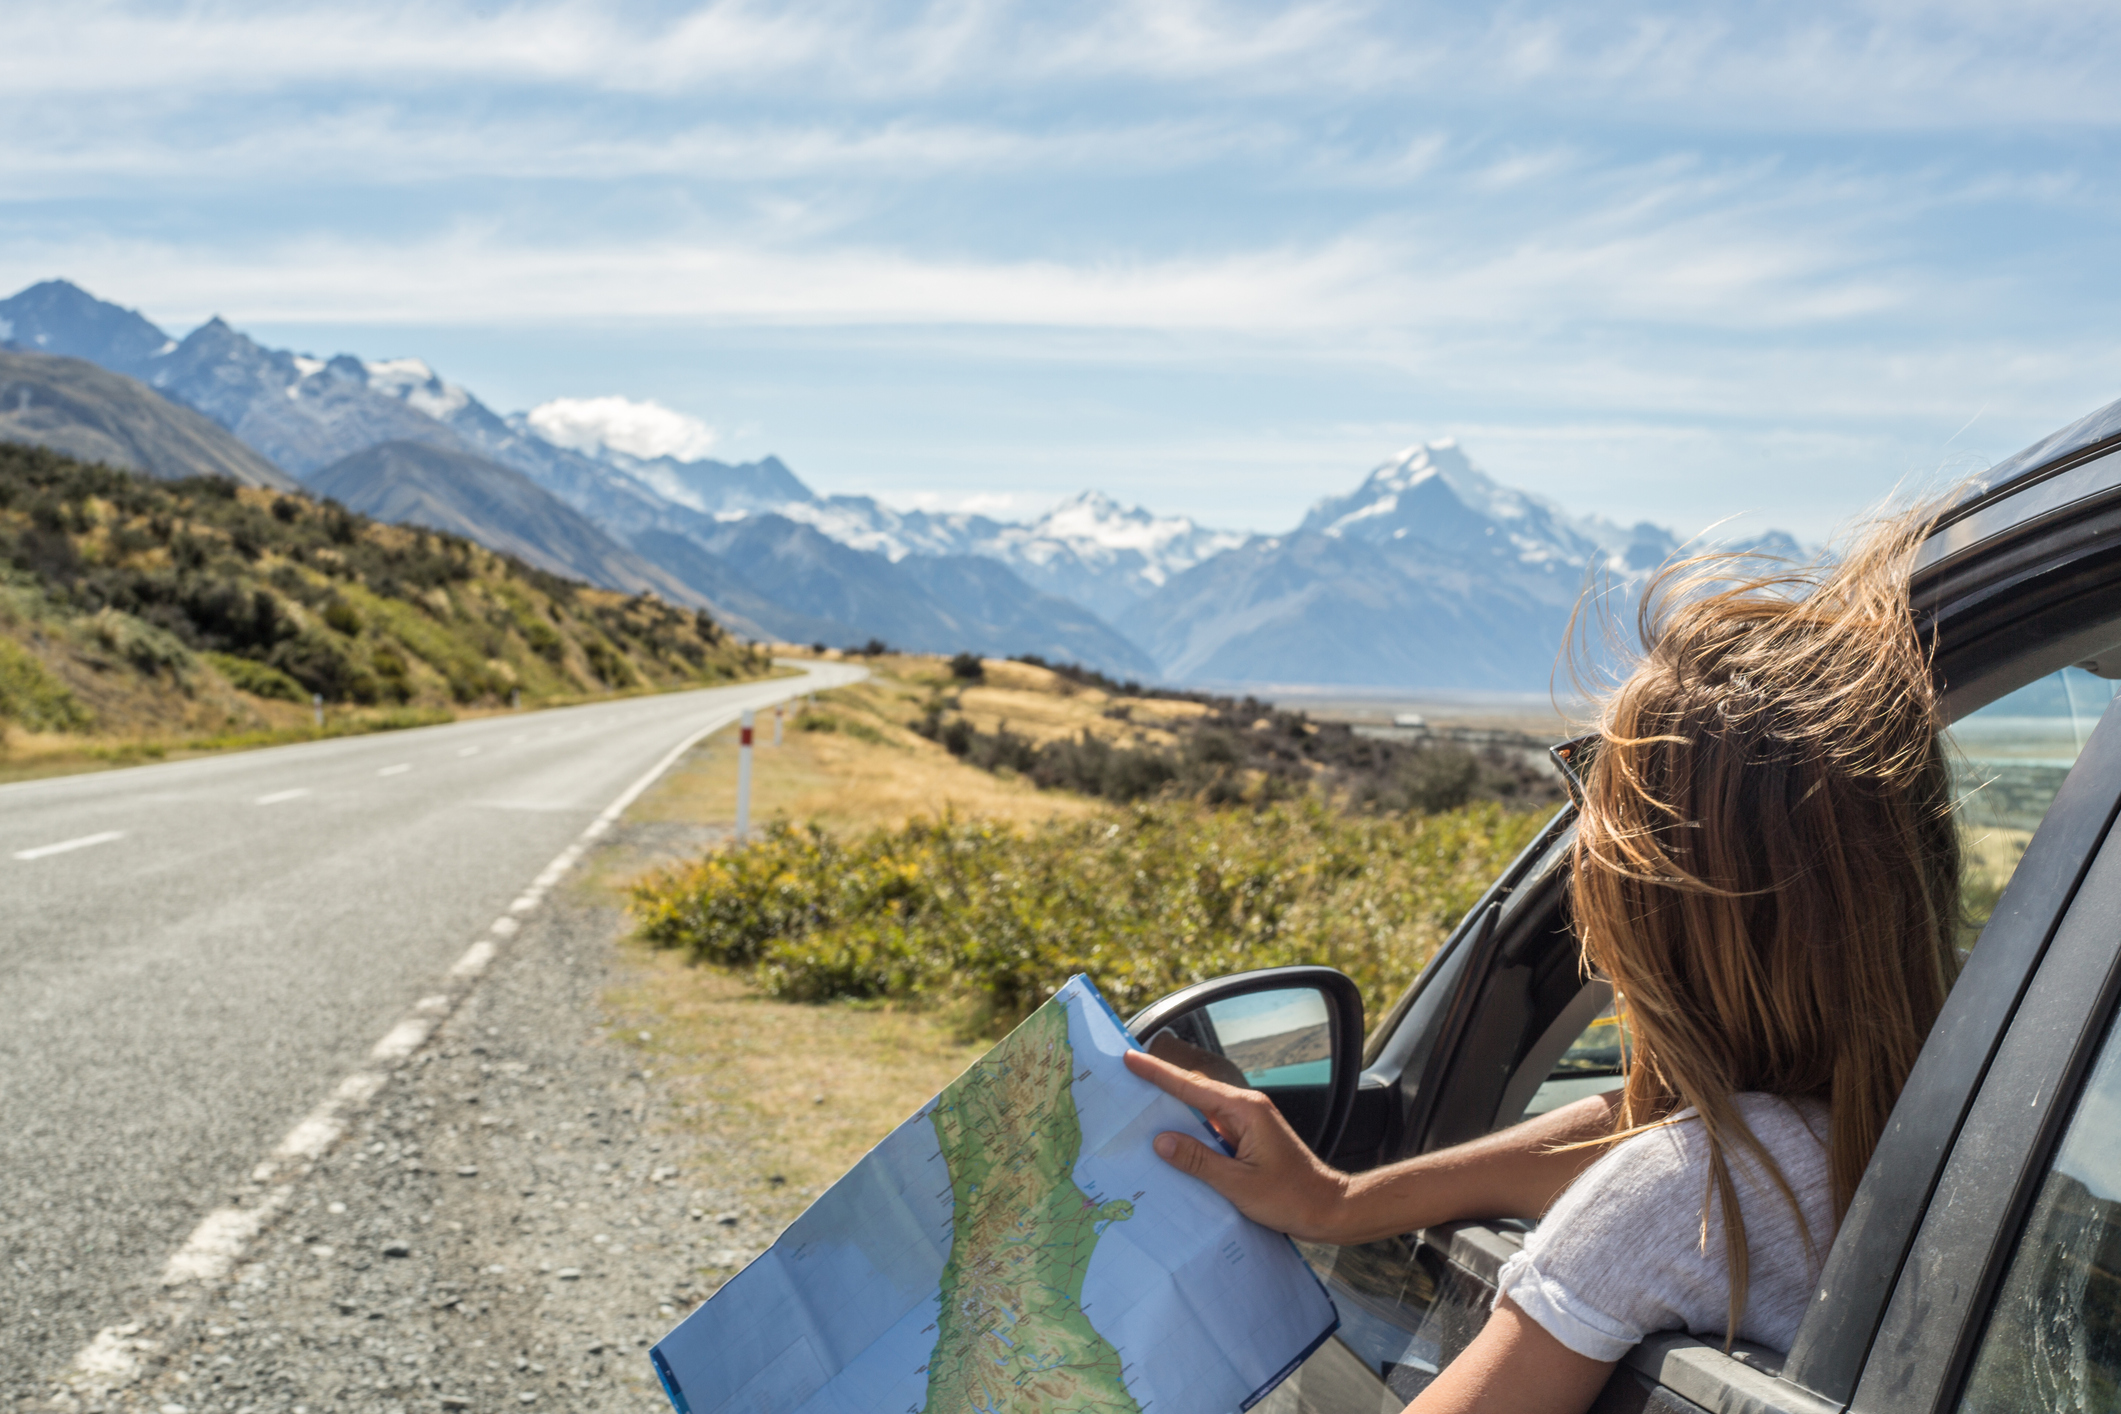 Ten Things You Need to Check Before Heading Out on Your Next Road Trip